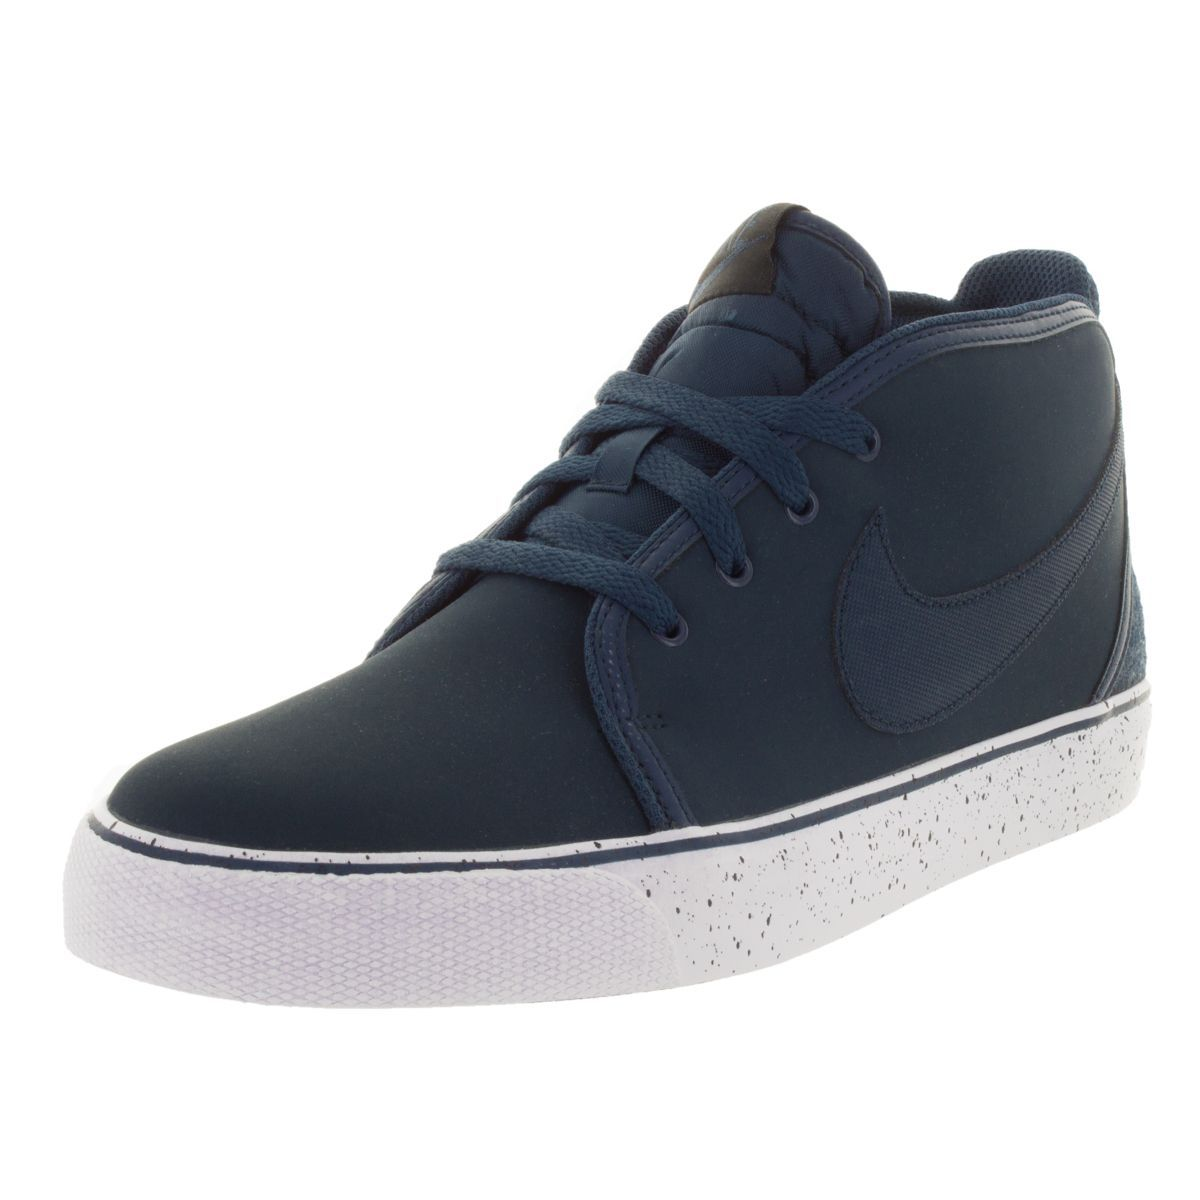 buy online 584af d3eb4 Nike Men s Toki ue  Black White Casual Shoe